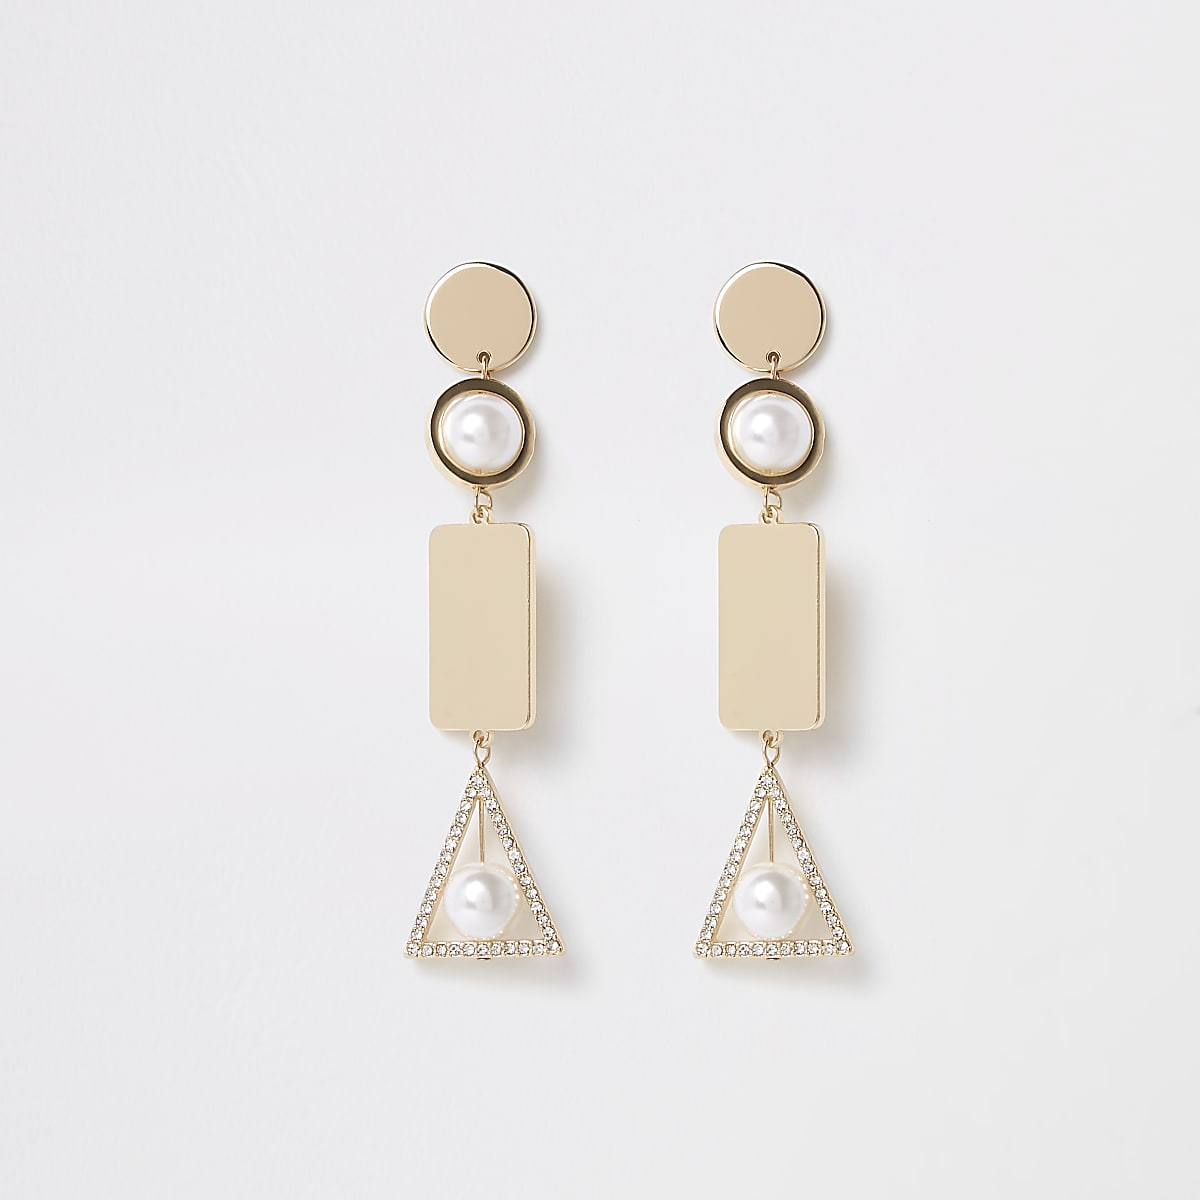 Gold color caged pearl dangle earrings